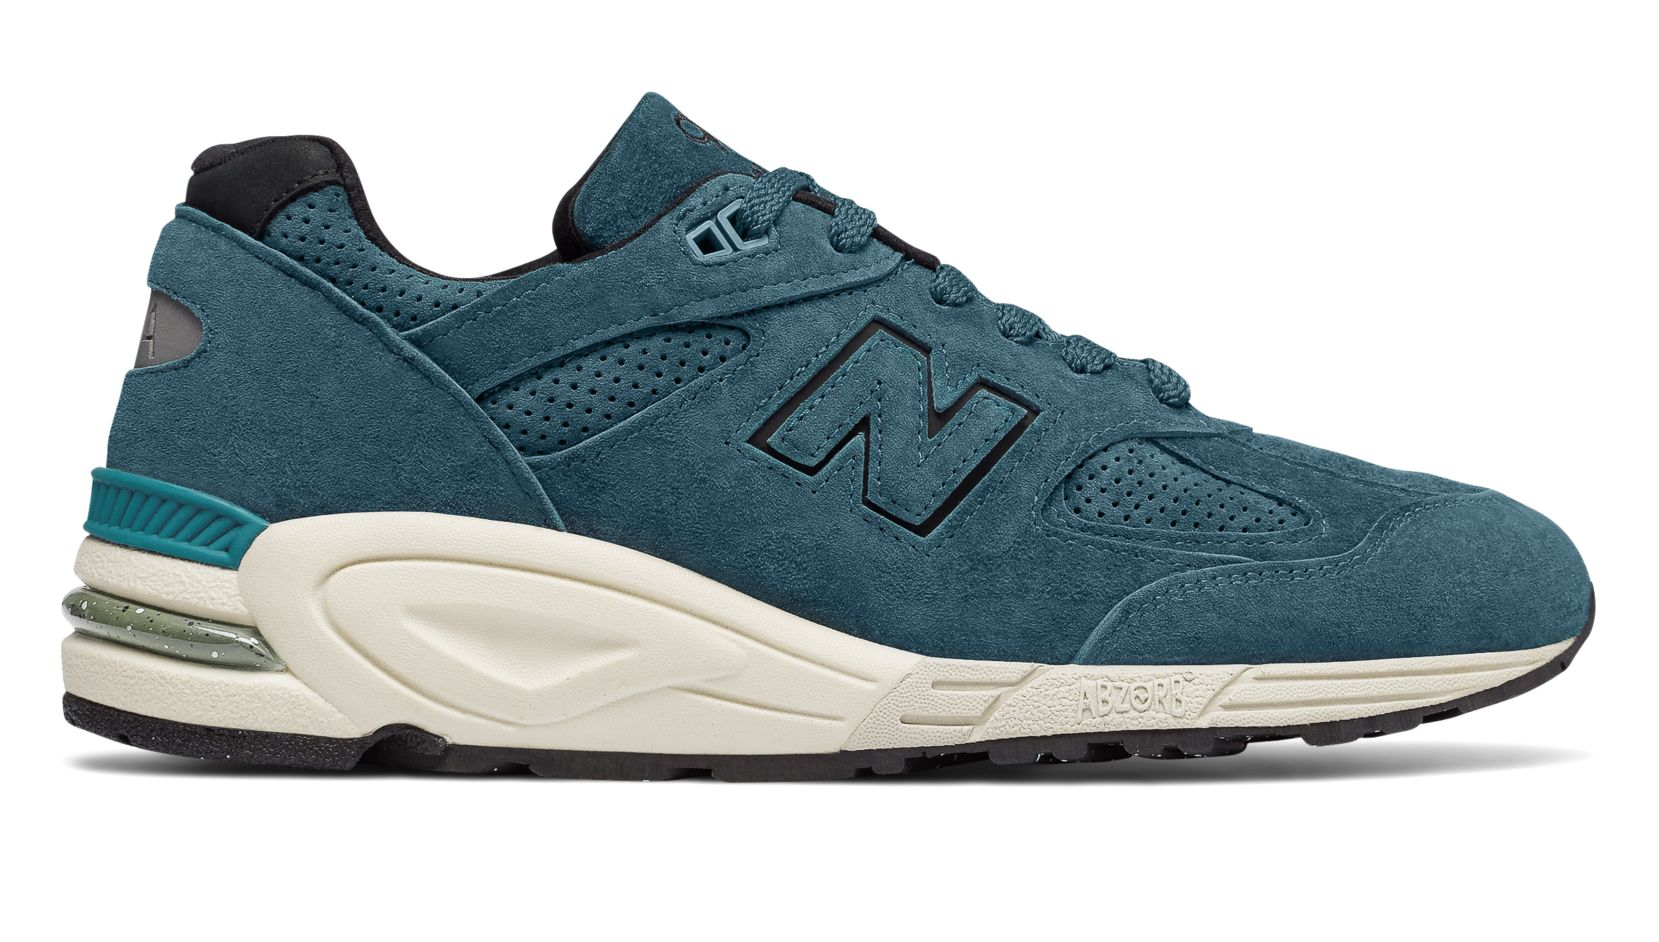 New Balance 990v2 Made in US Color Spectrum Men's Made in USA Shoes - (M990-V2CS) hLd1z